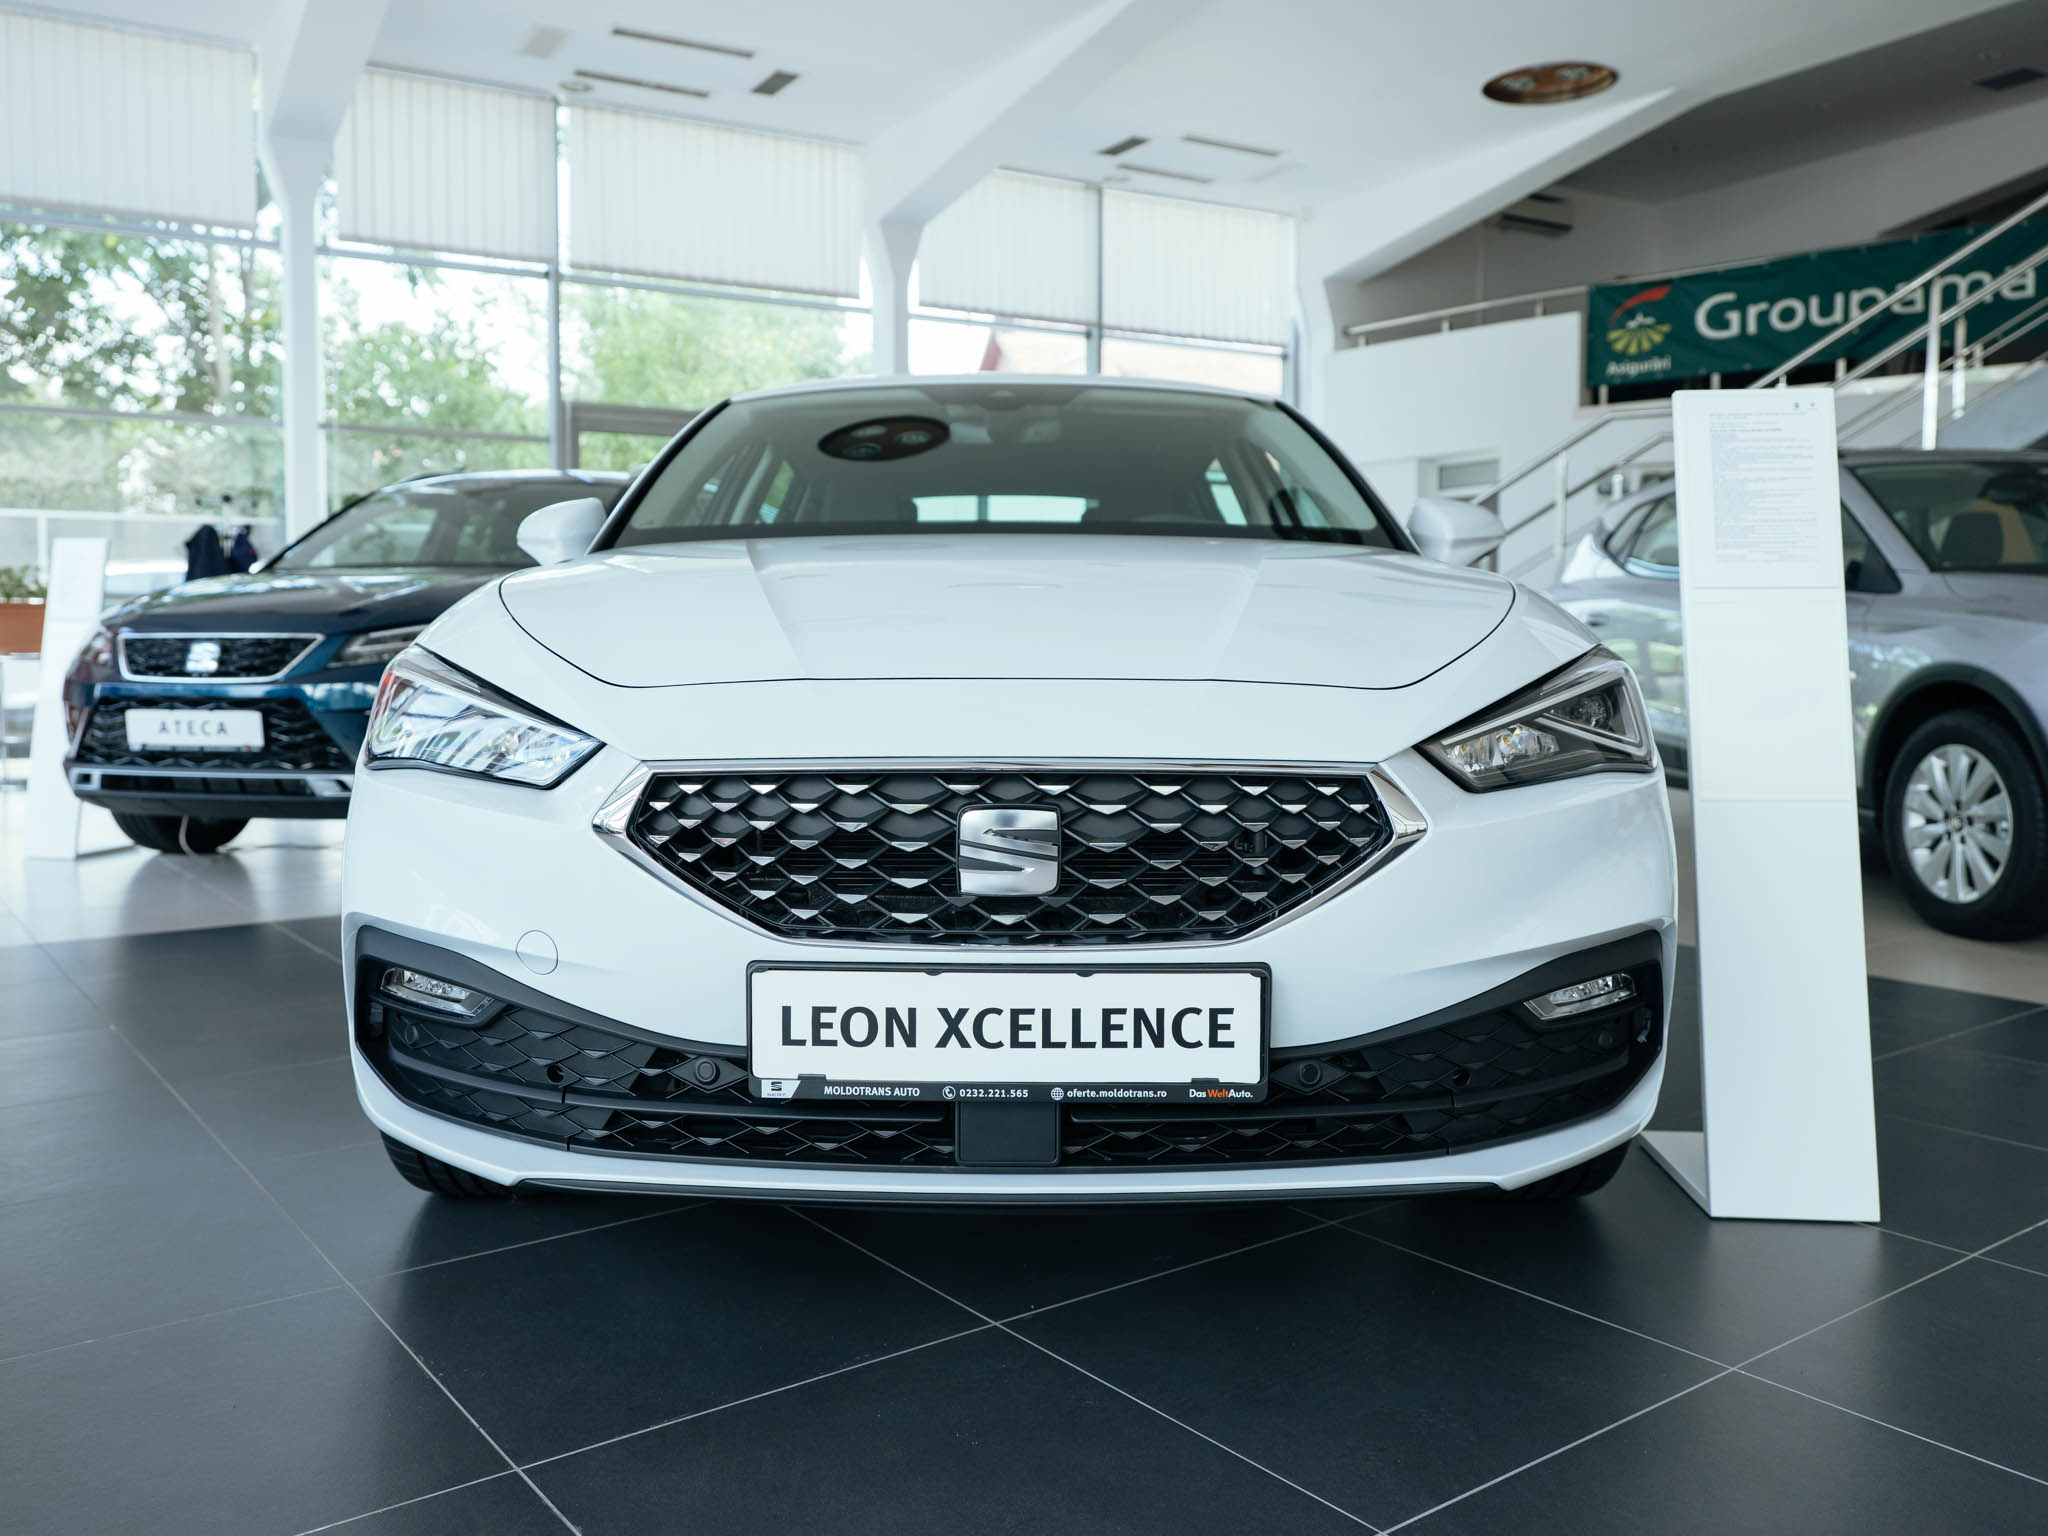 Noul LEON XCELLENCE, 1.5 TSI 130 CP : Seat Leon Xcellence